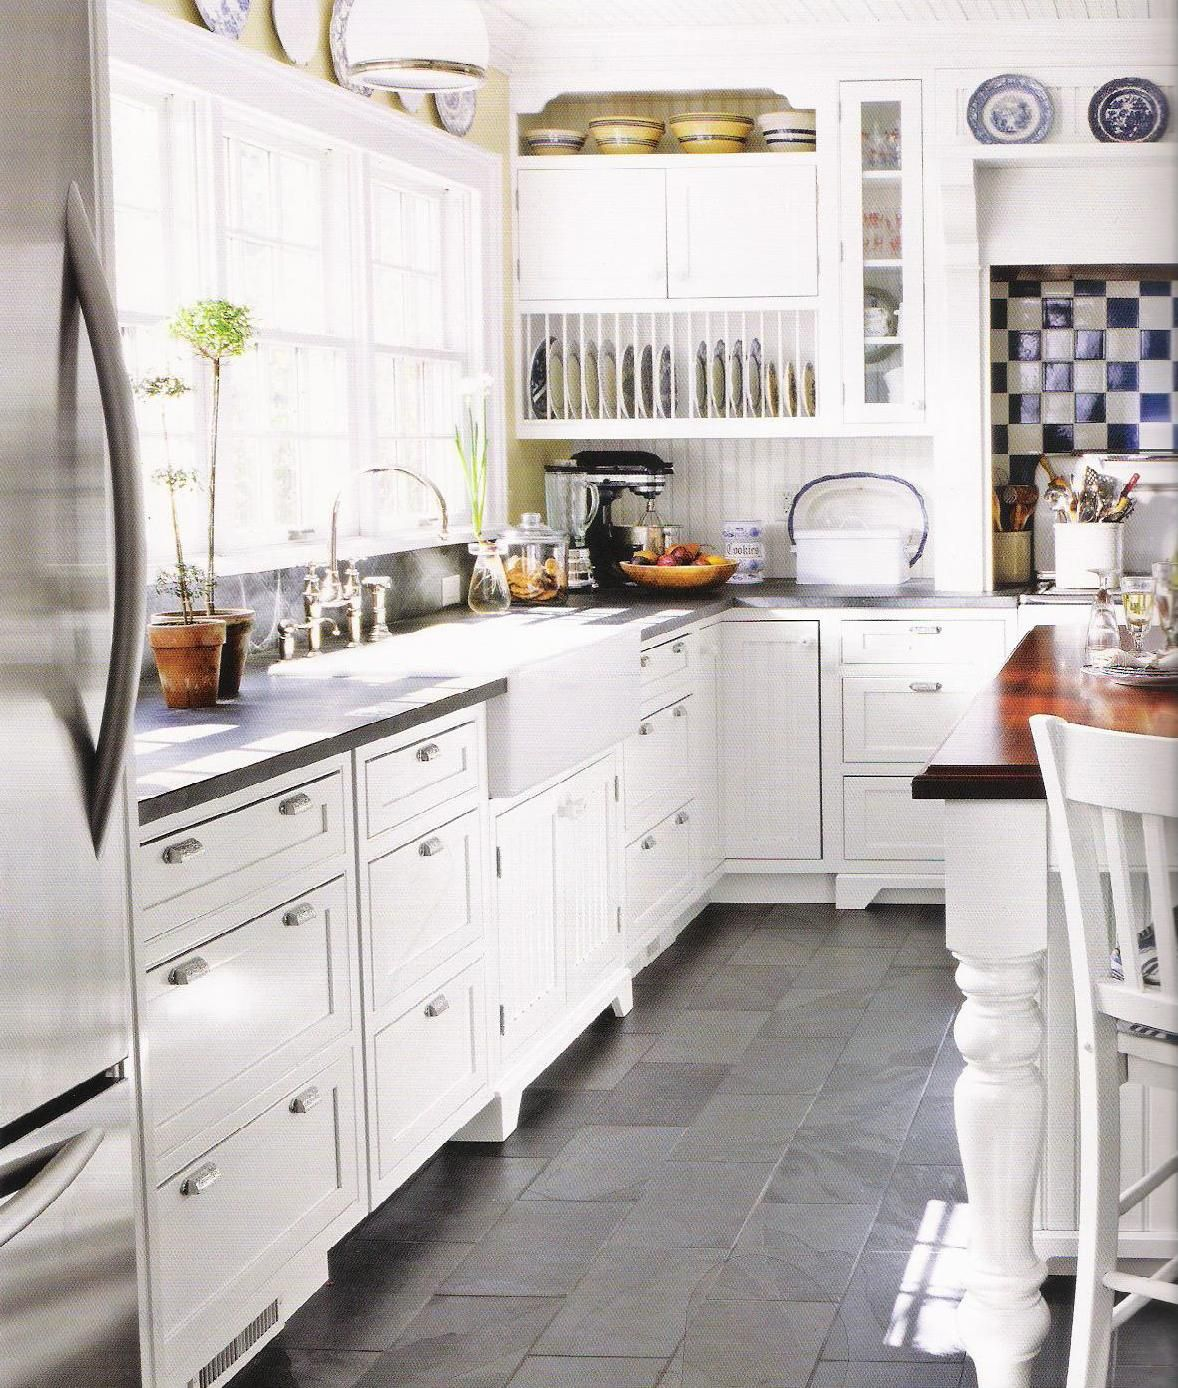 White Kitchen Cabinets Tile Floor: Like Slate Looking Floor, Plate Rack, Painted White Island